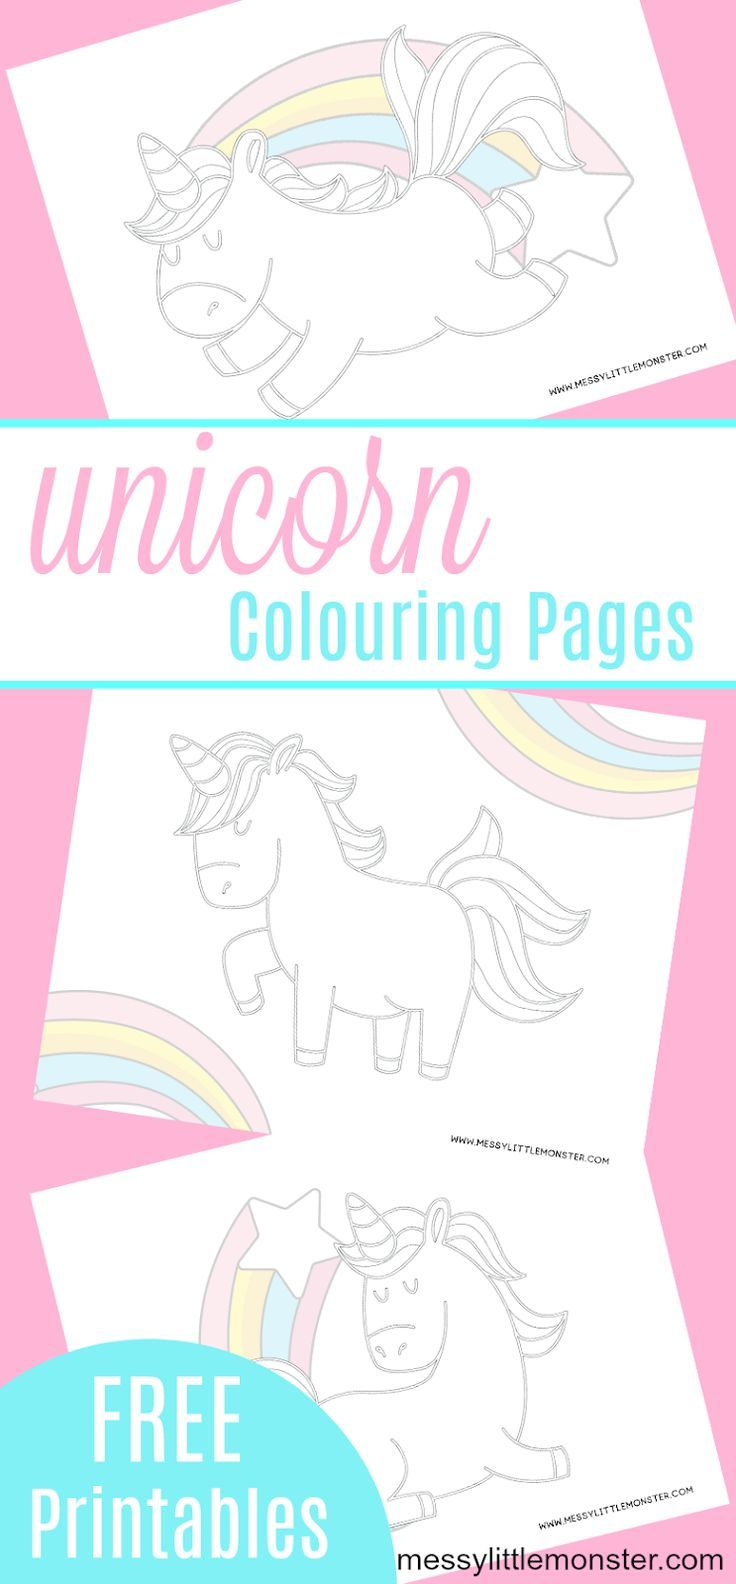 Free Printable Unicorn Colouring Pages Coloring Pages Unicorn